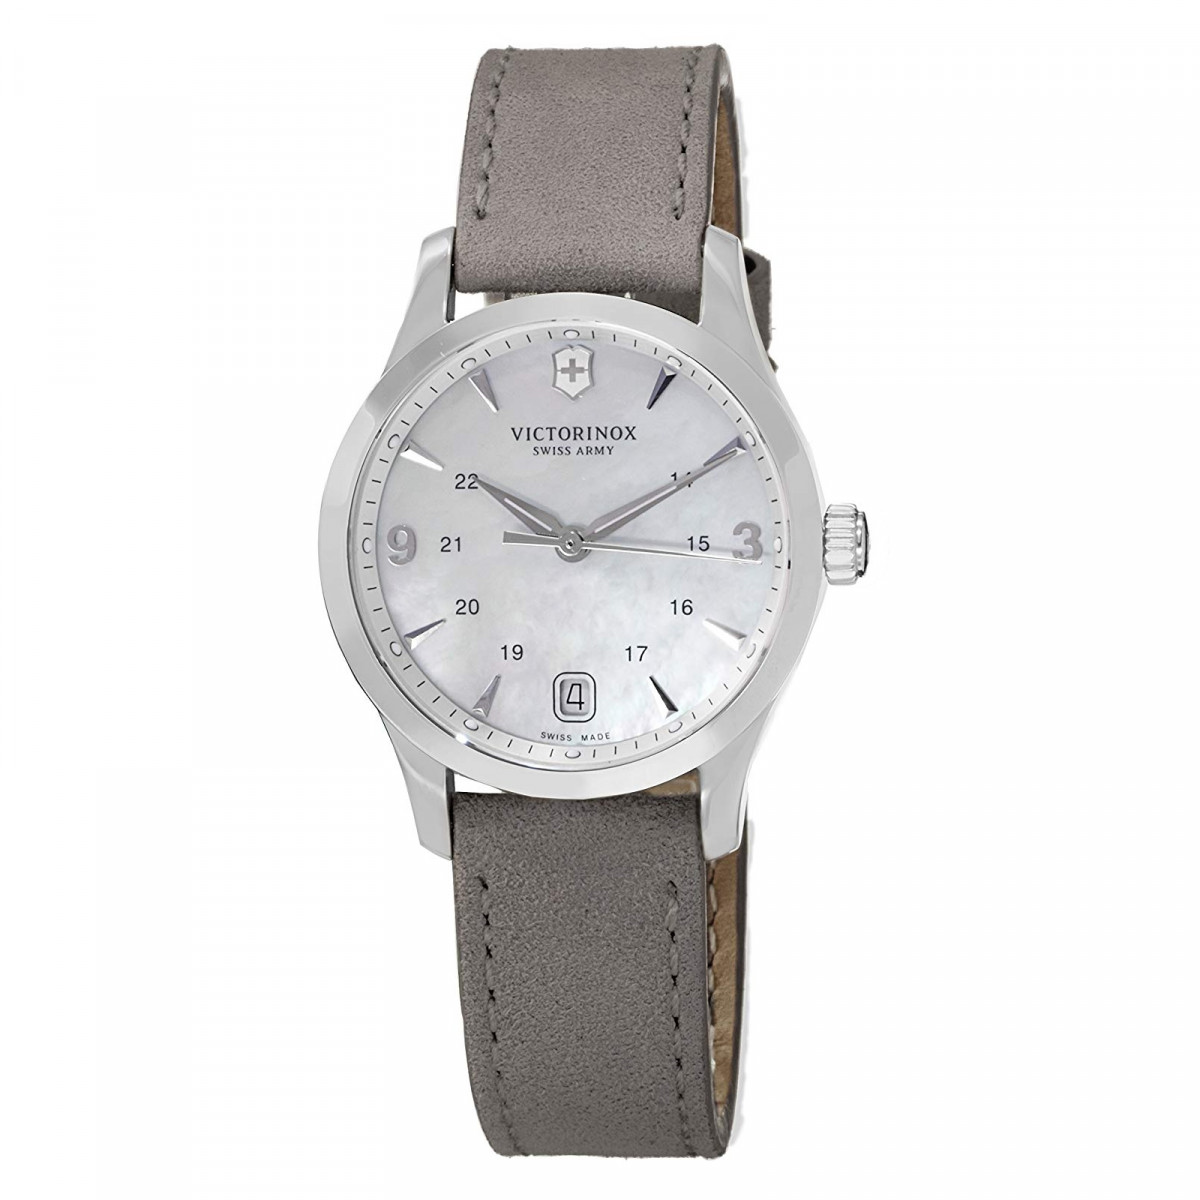 Montre Femme Victorinox ALLIANCE small, grey MOP dial, grey leather strap - 30mm